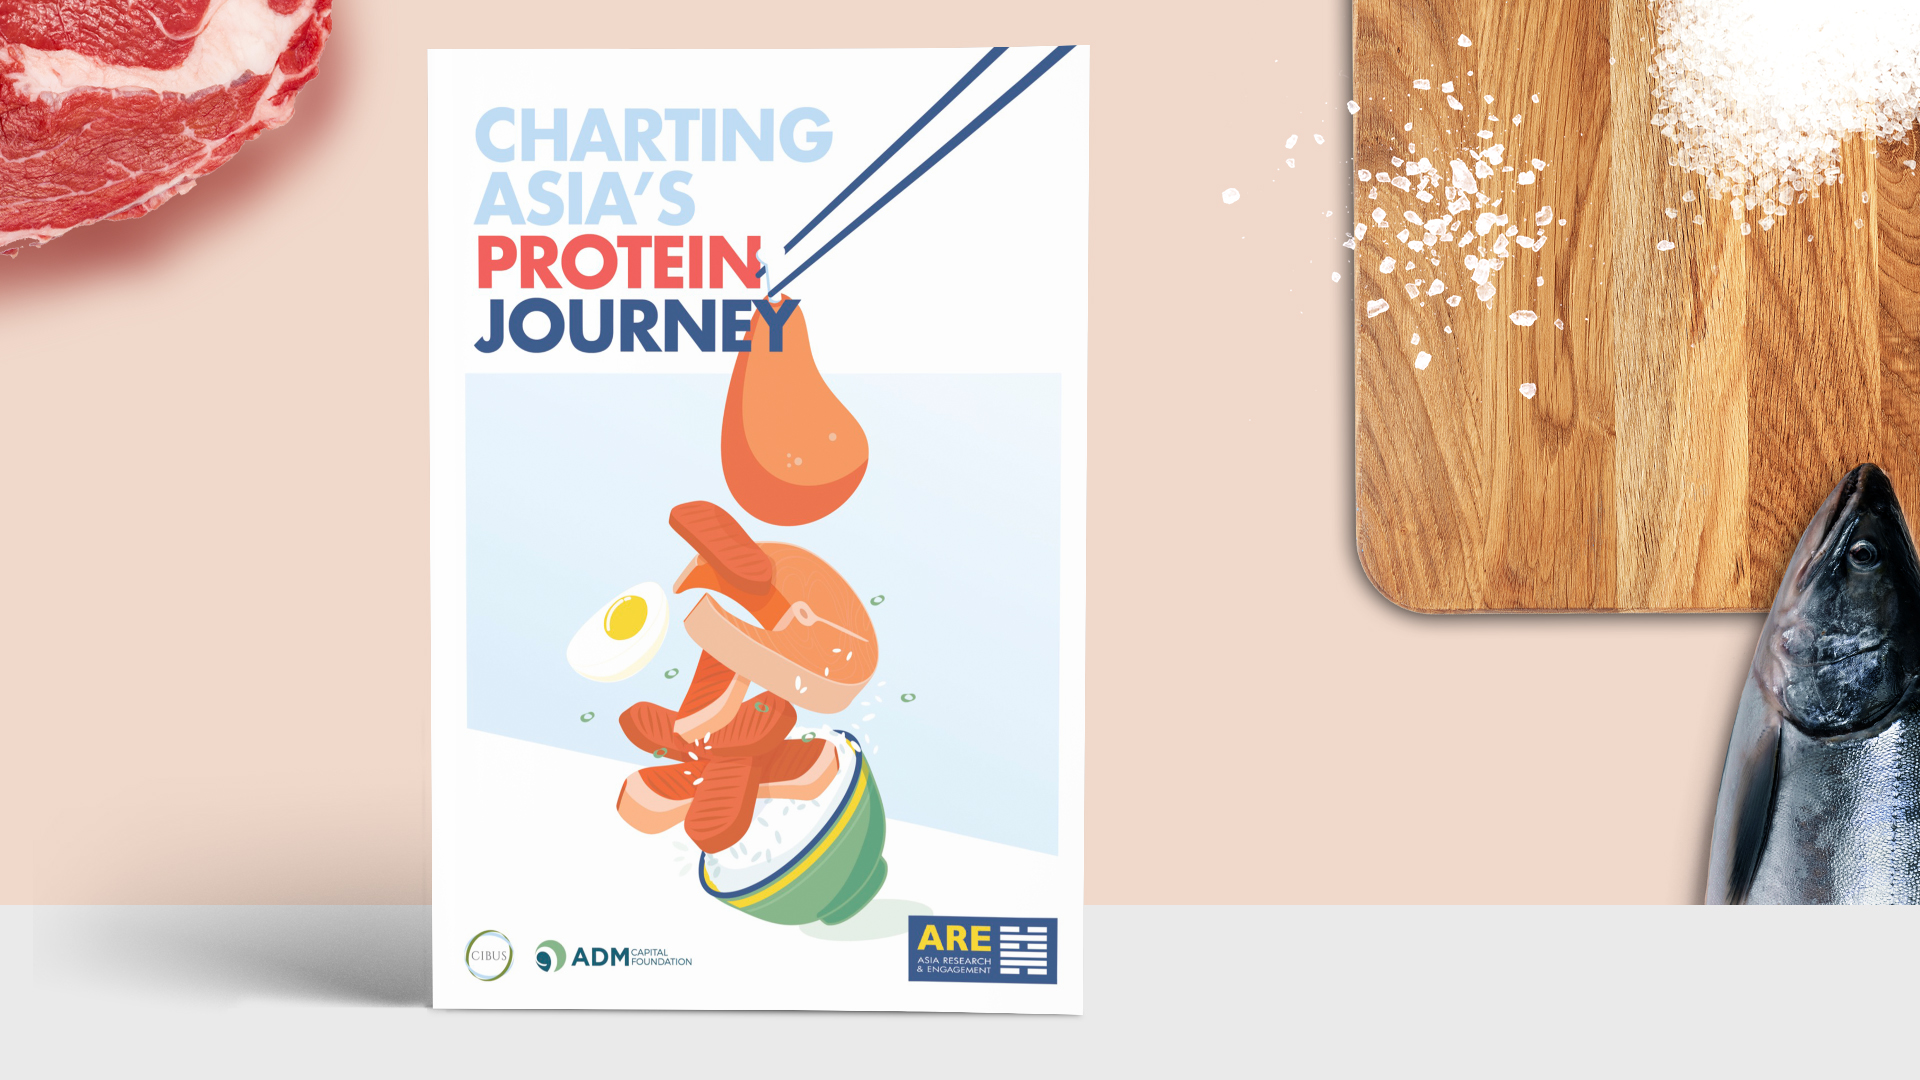 Charting Asia's Protein Journey, Food Report